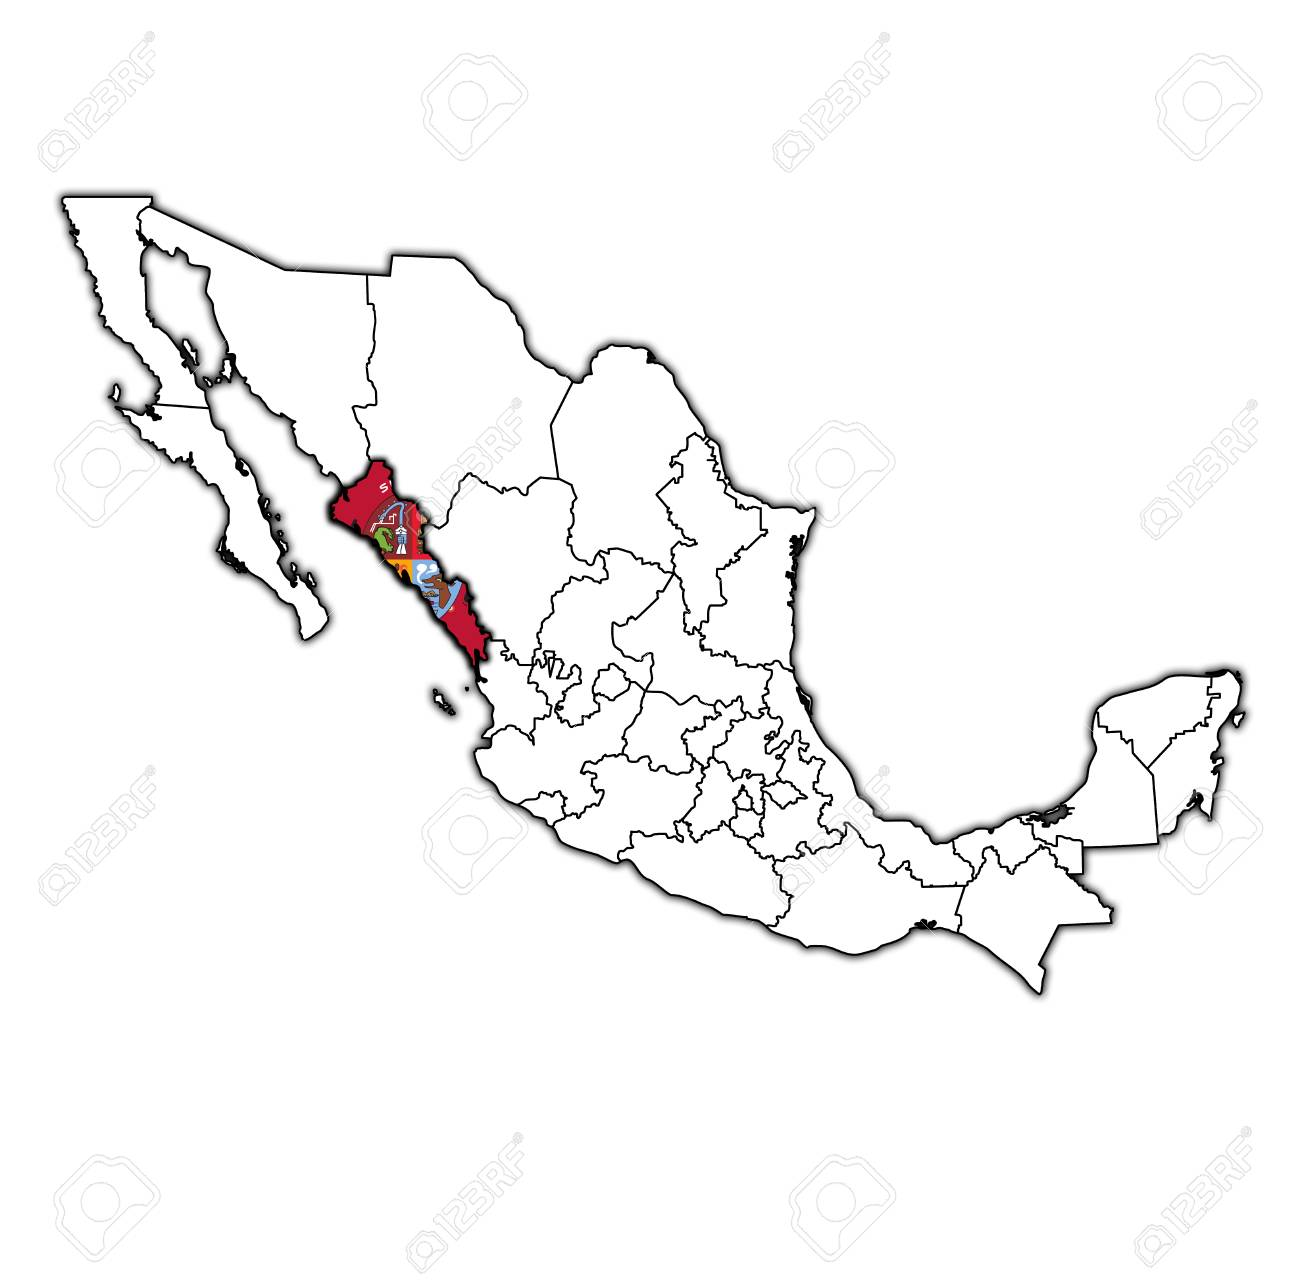 Sinaloa State Map.Emblem Of Sinaloa State On Map With Administrative Divisions Stock